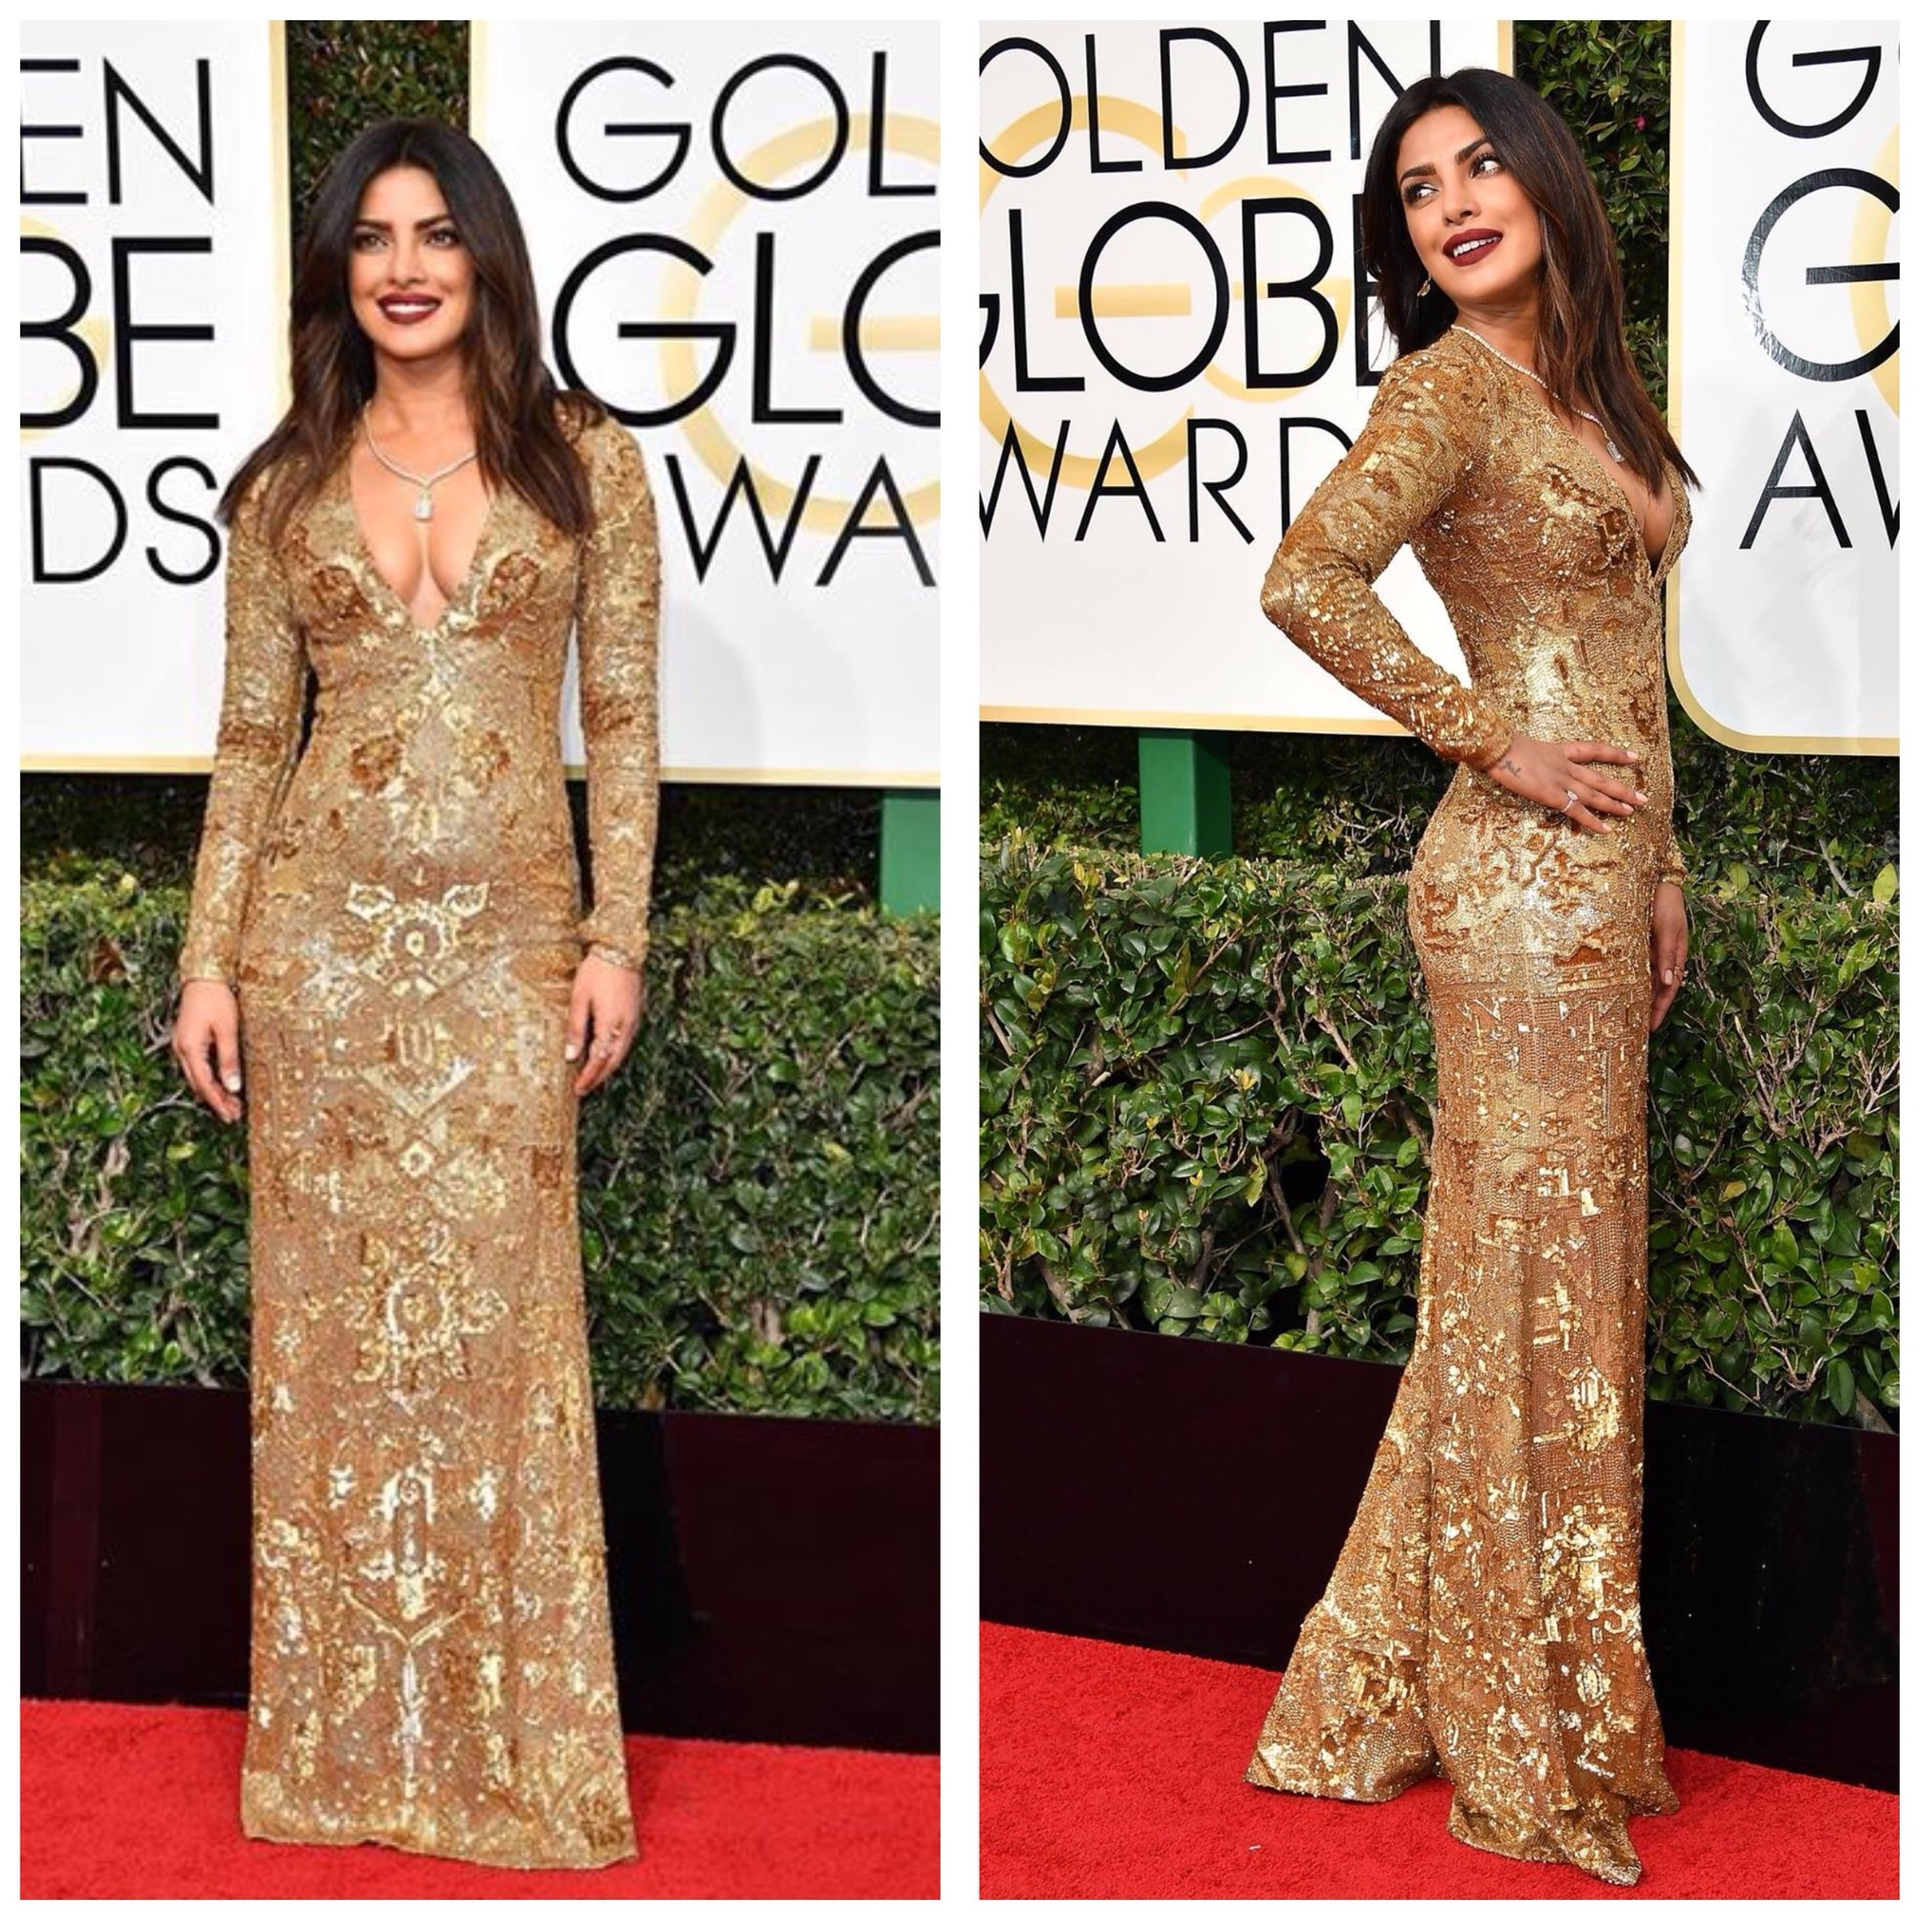 Priyanka Chopra dazzled at Golden Globe Awards